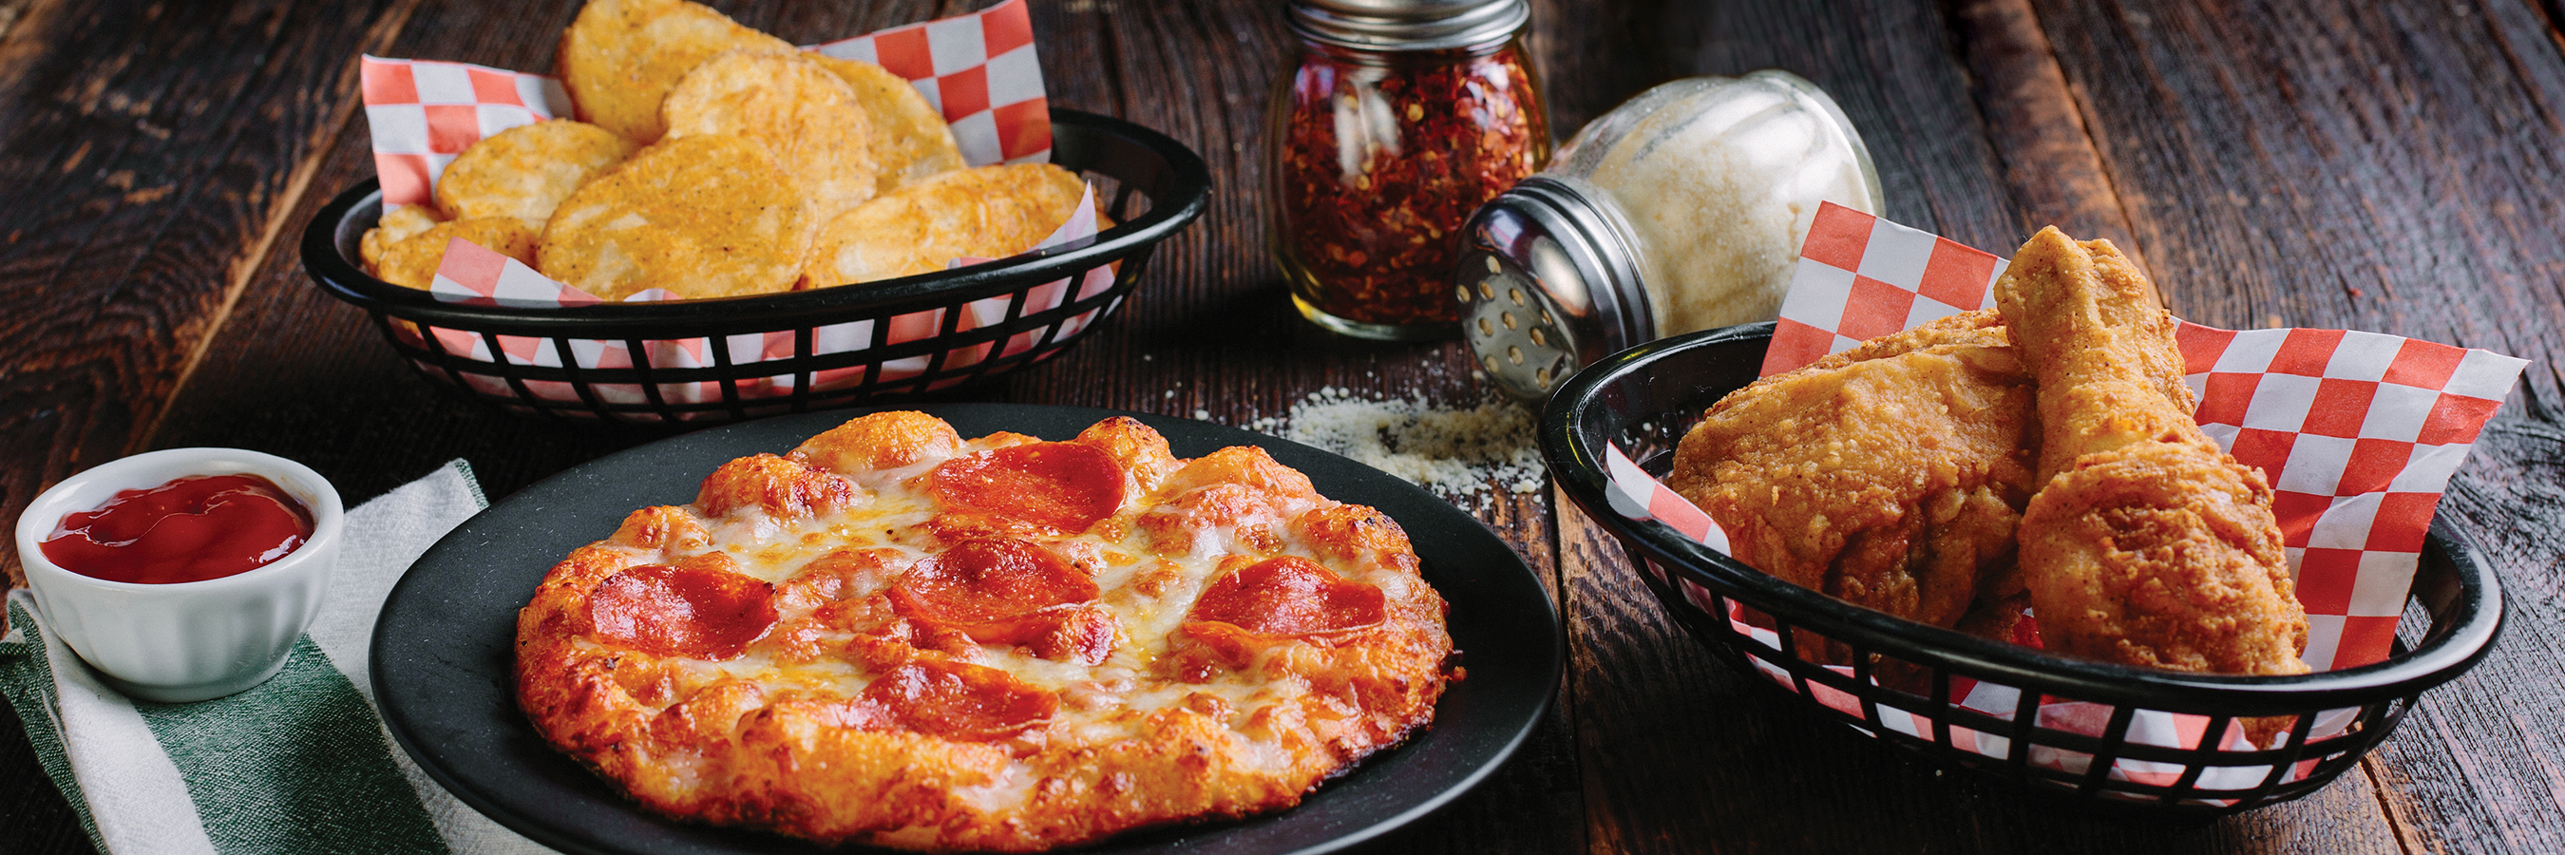 Shakey's Hero Image - PCM Lunchbox To-Go $8.99